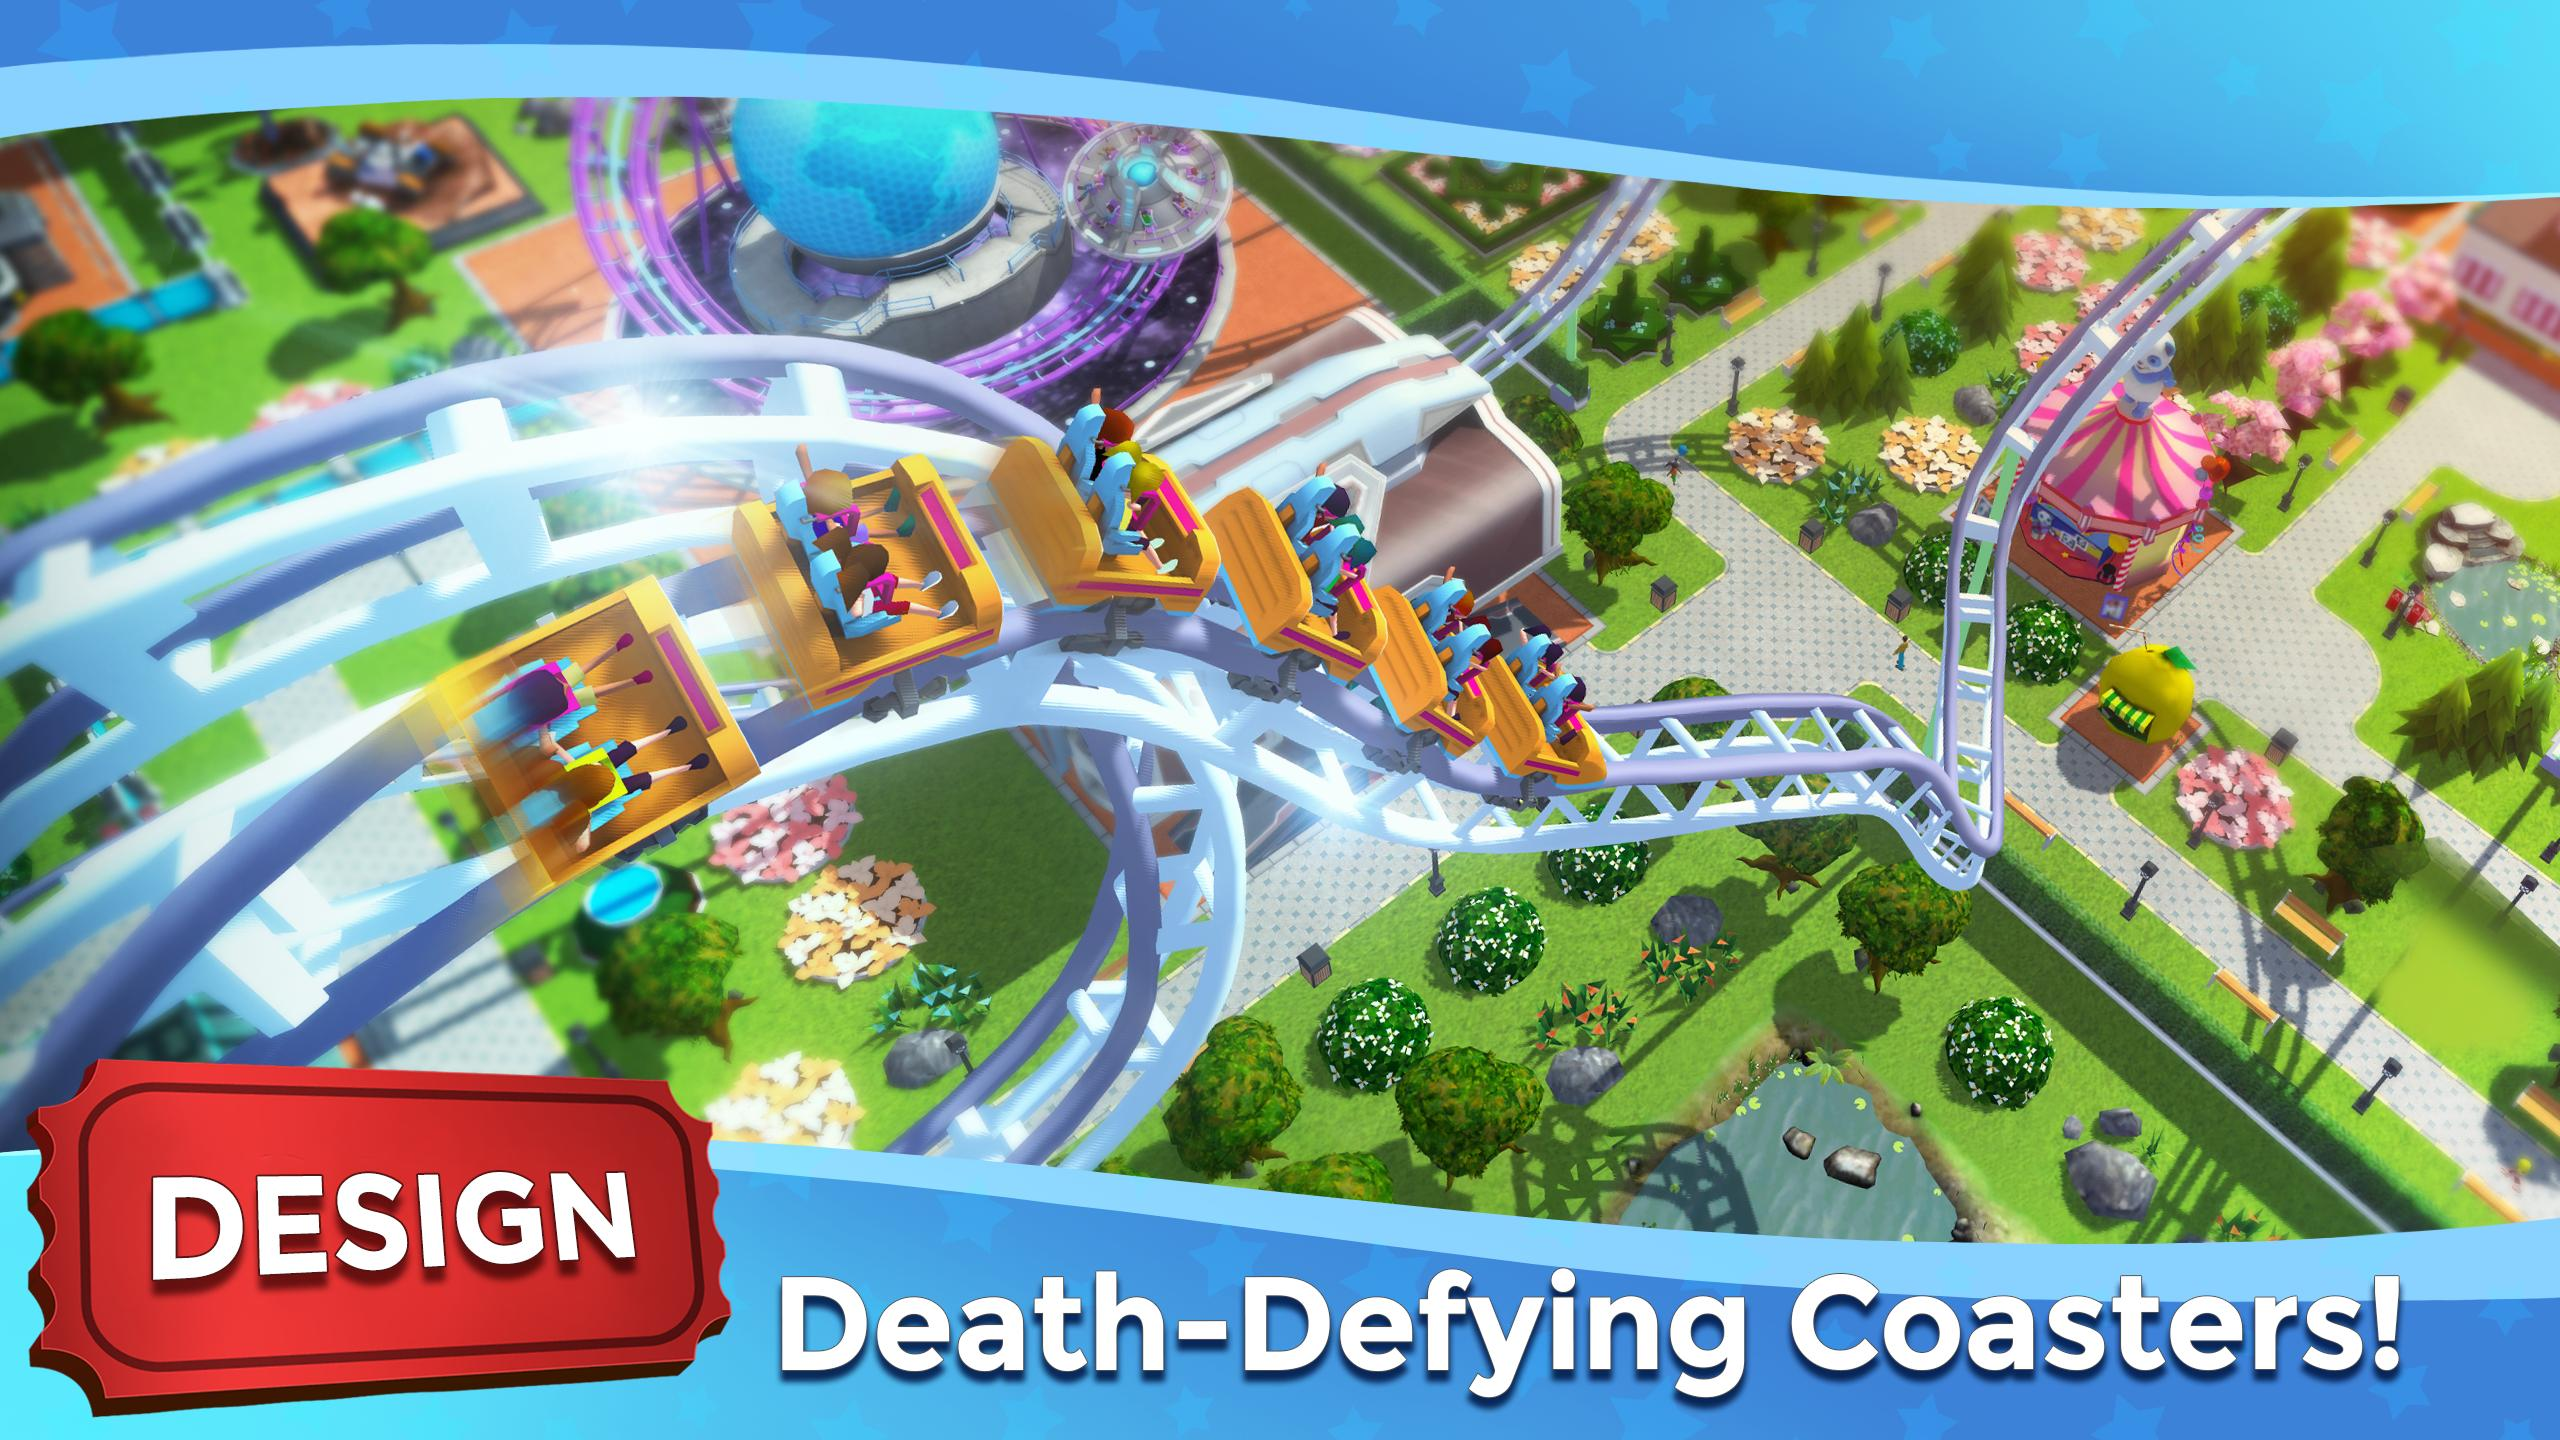 RollerCoaster Tycoon Touch - Build your Theme Park 3.5.0 Screenshot 2